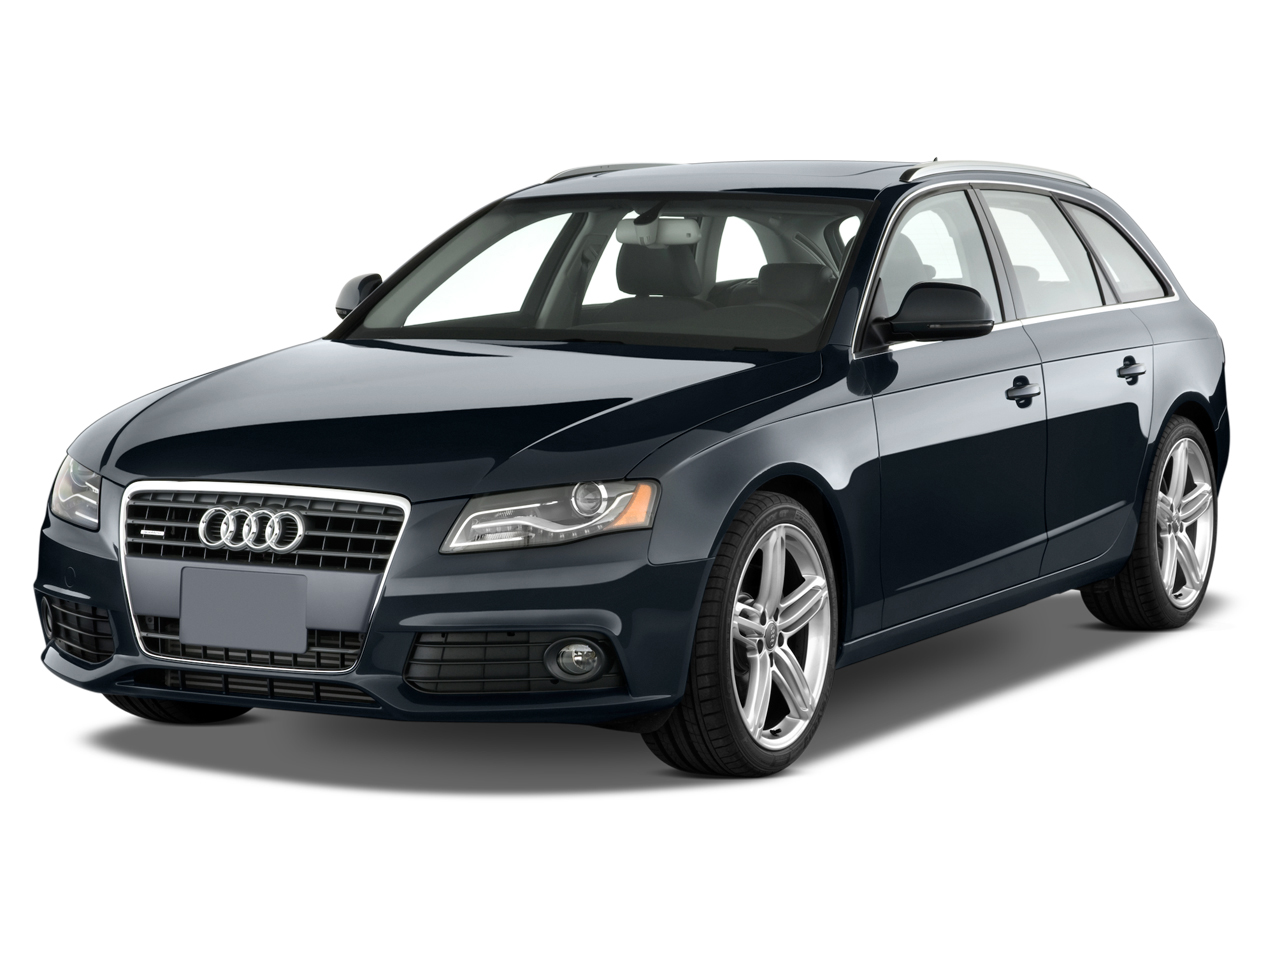 2012 Audi A4 Review Ratings Specs Prices And Photos